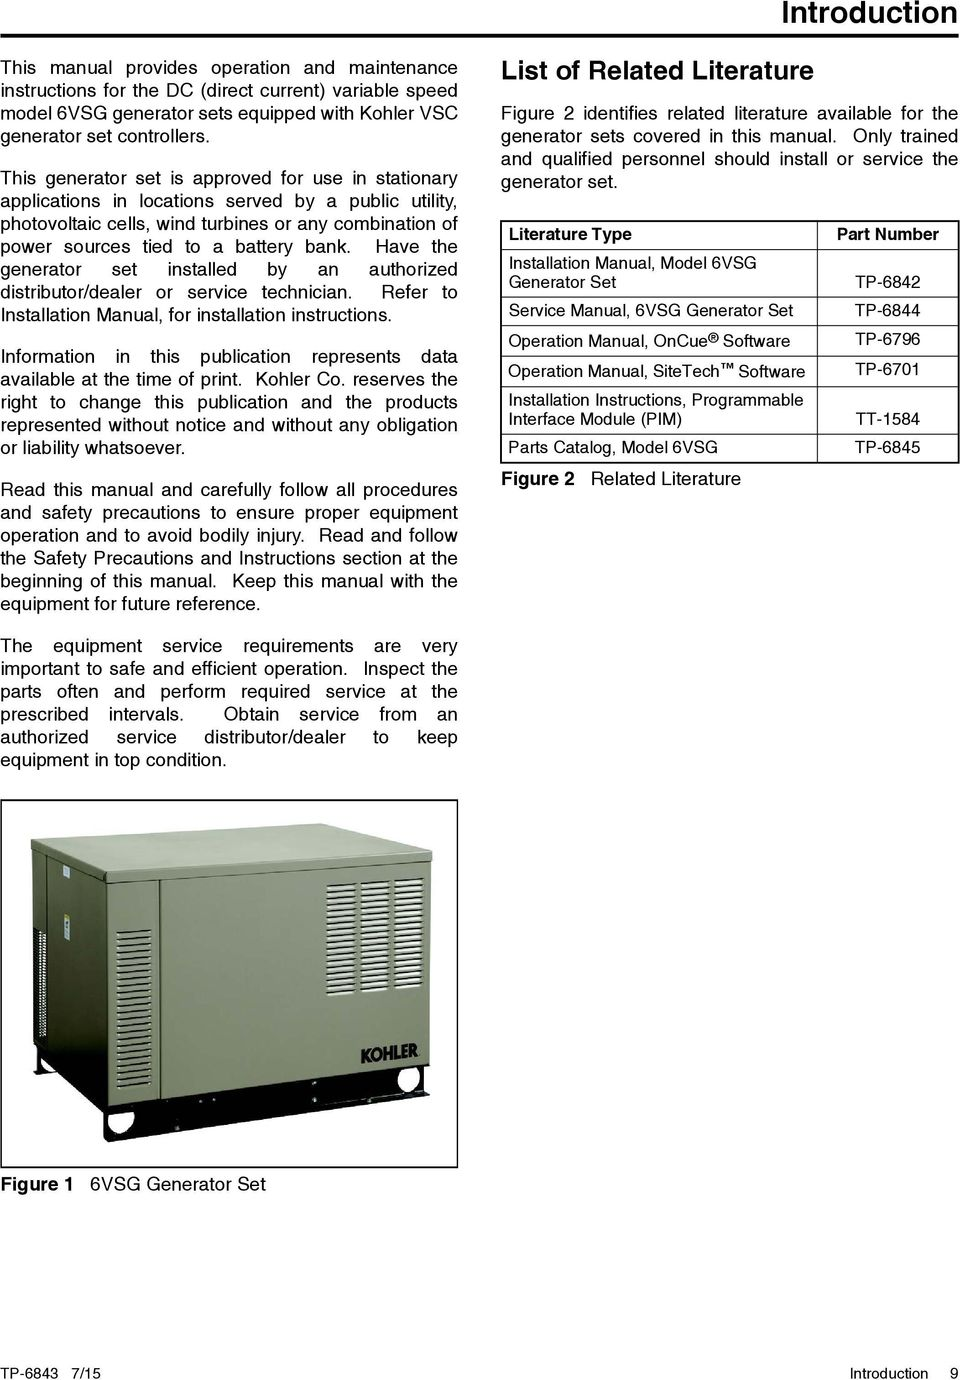 Have the generator set installed by an authorized distributor/dealer or  service technician. Refer